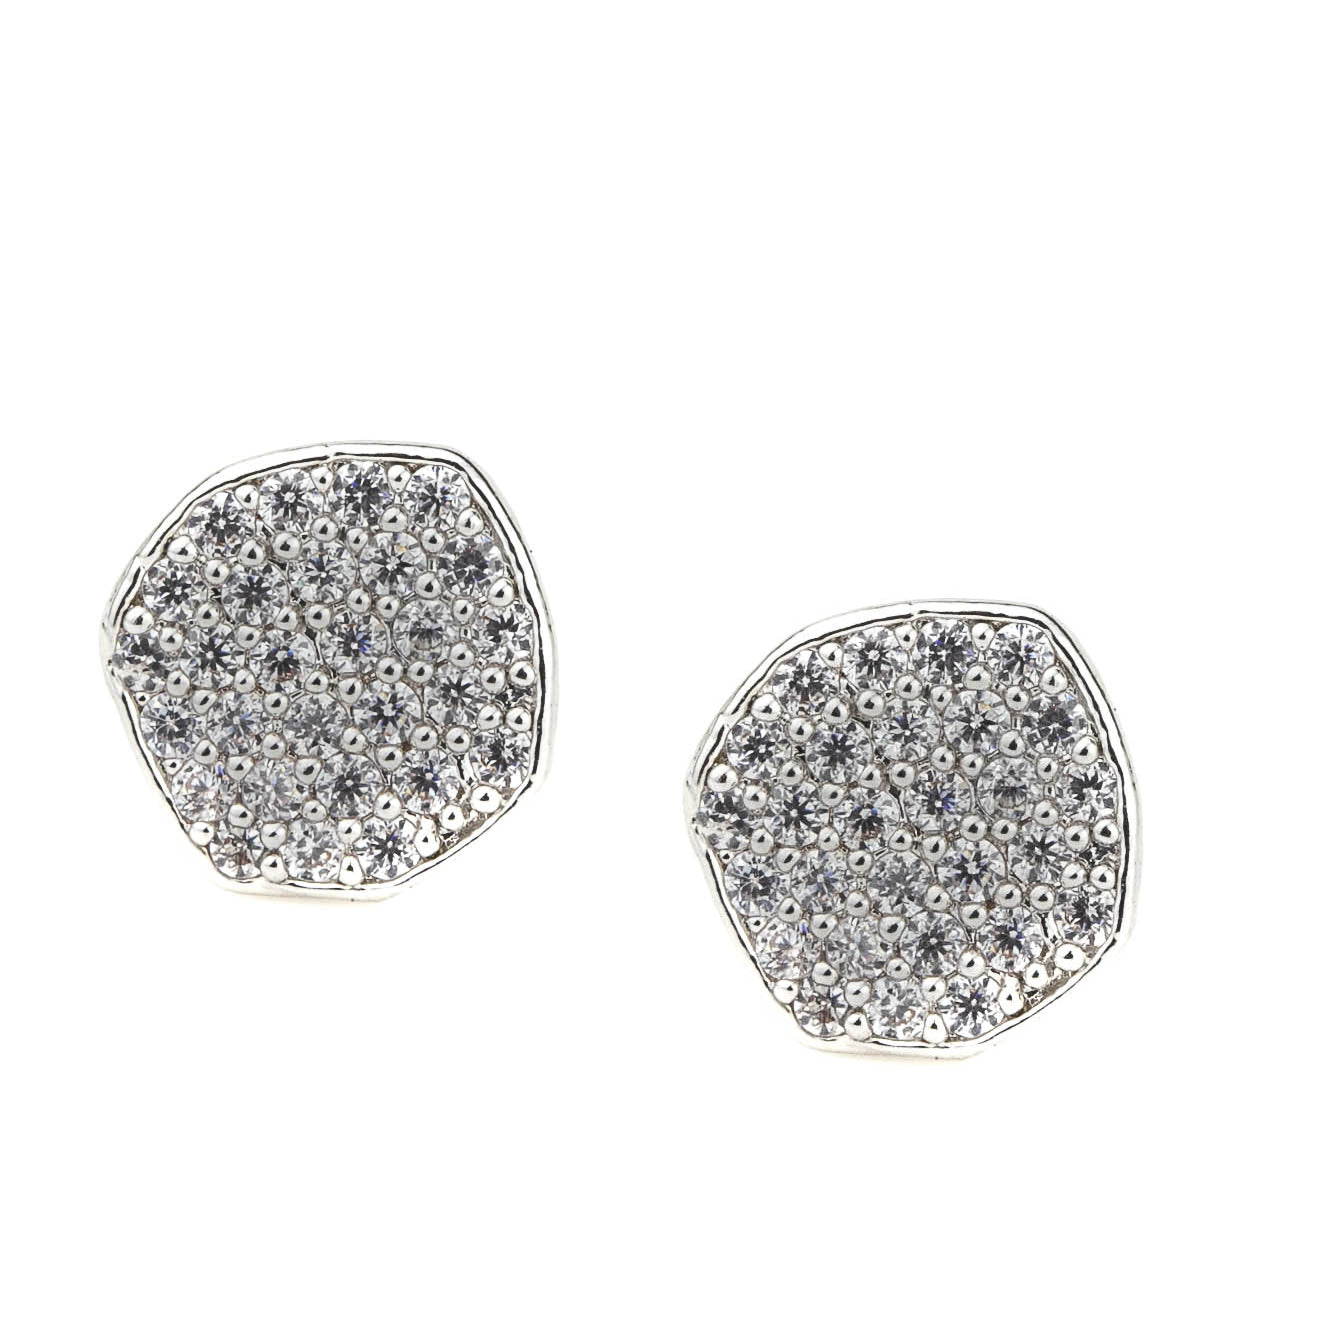 Wavy Pave Disc Earrings